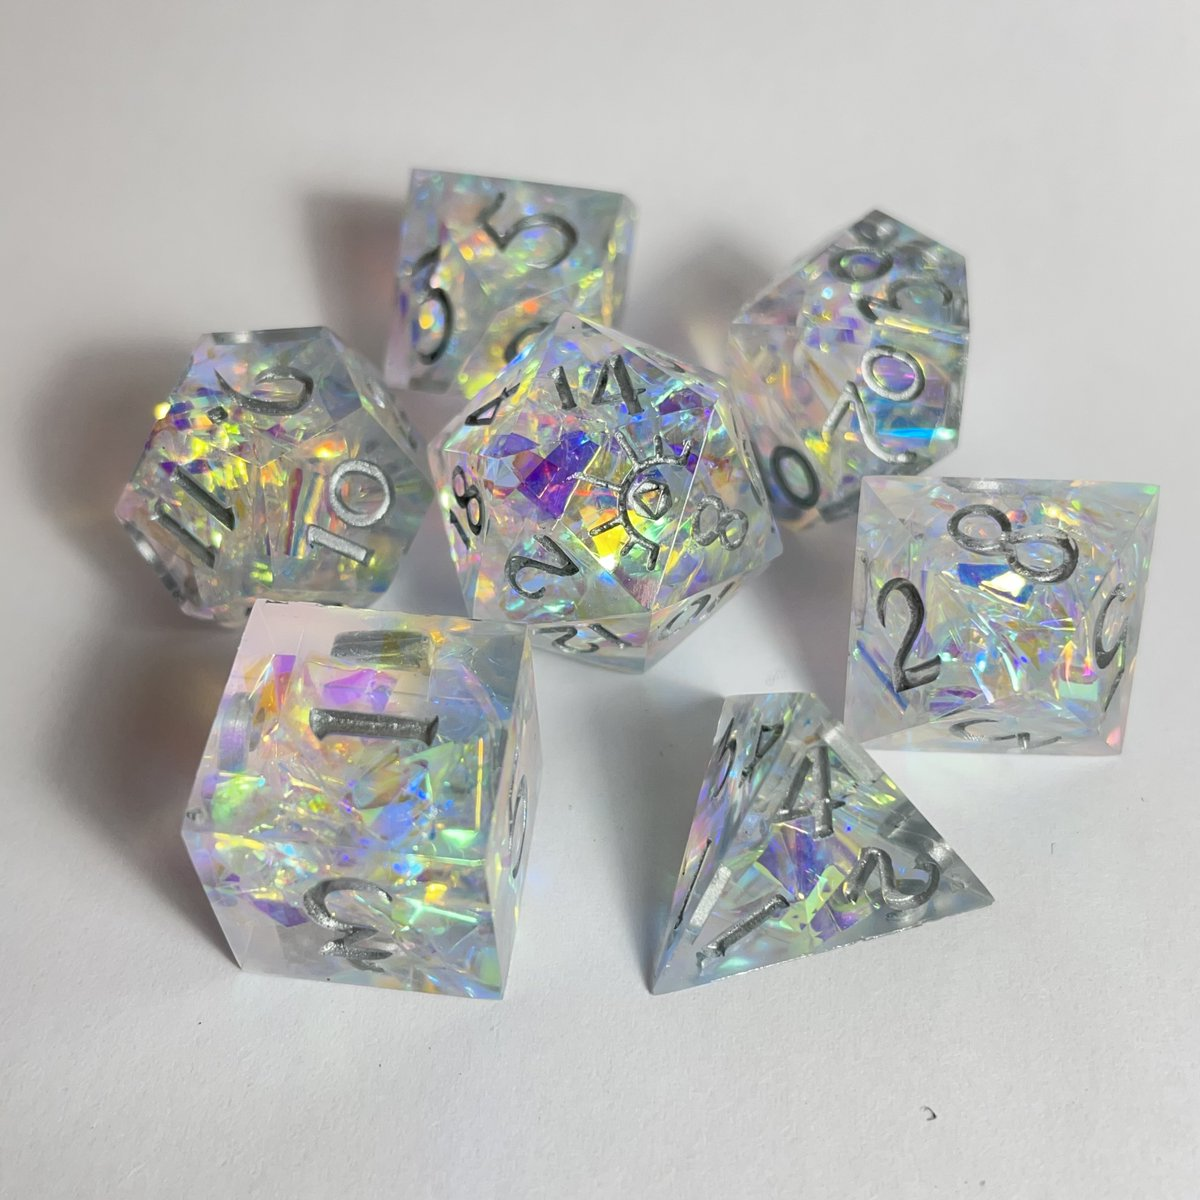 Hey all you Dice hording goblins, I recently had a shop update with some new and handmade shiny math click clack. Go check it out.  #dnd #CriticalRole